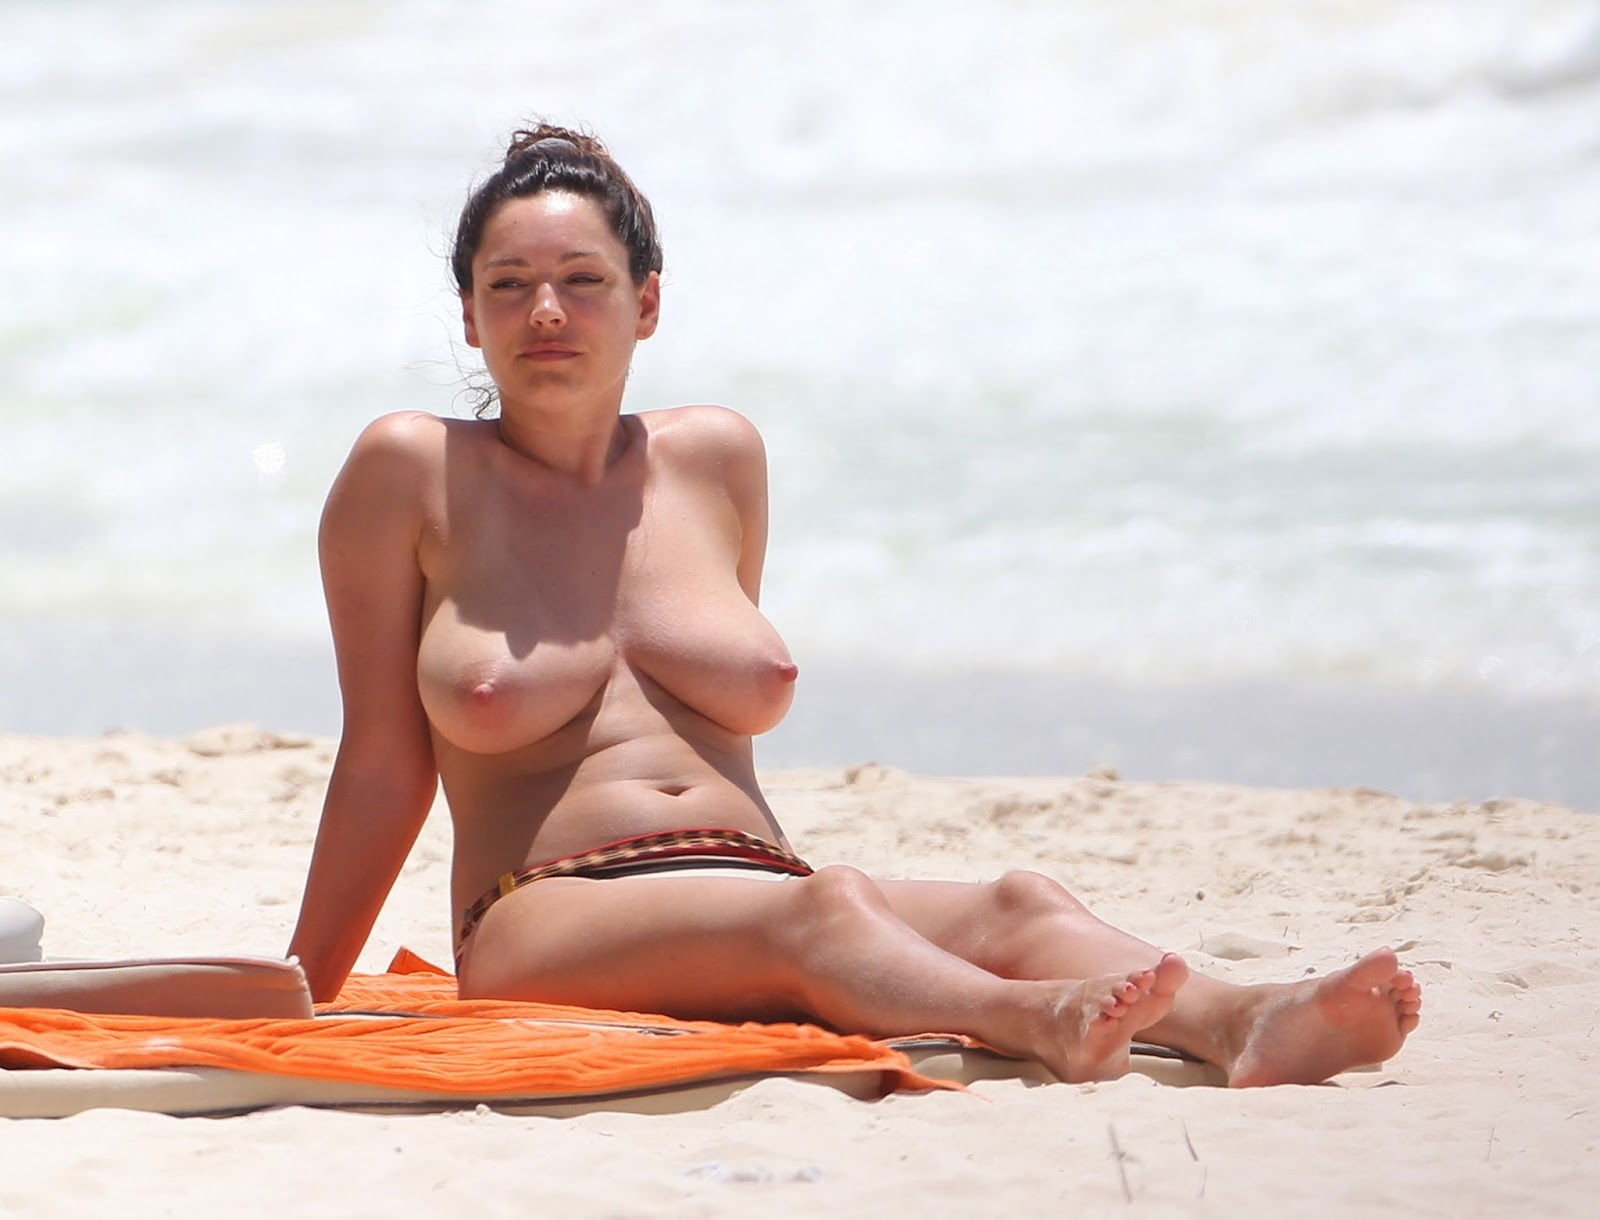 Erotic Space Girls: Kelly Brook Topless in a Bikini on the Beach